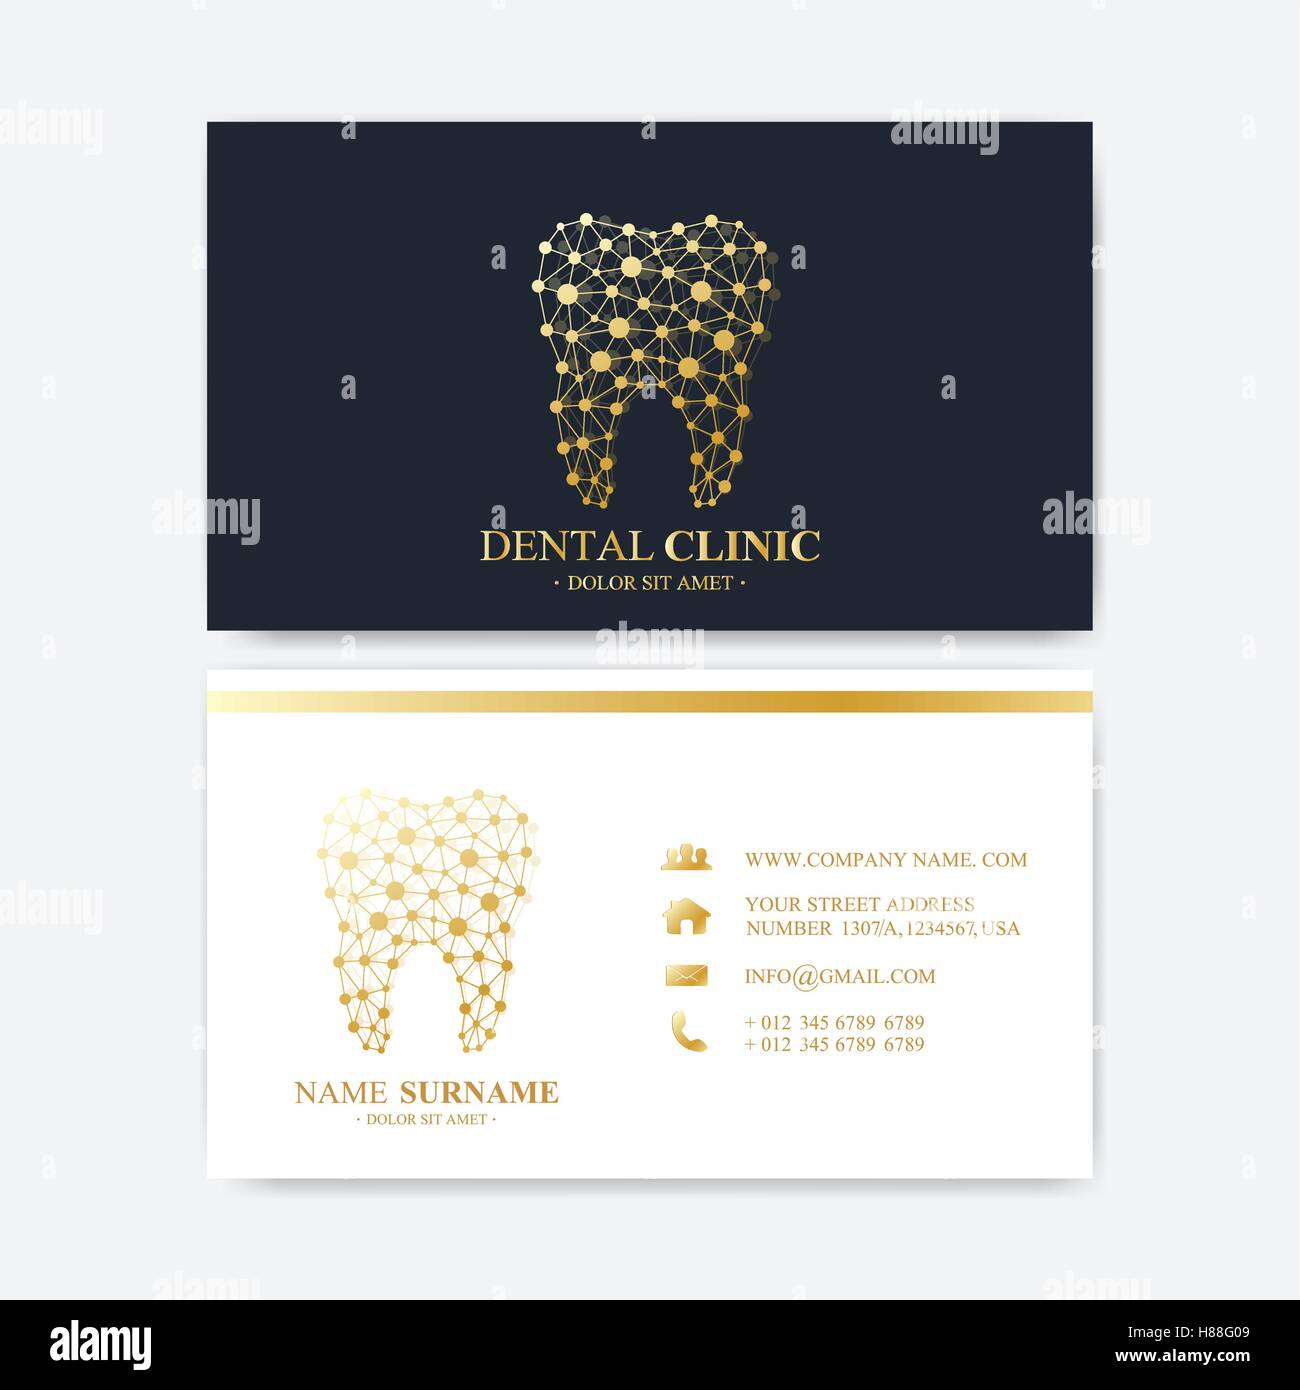 Business card printing online usa image collections card design order business cards online usa images card design and card template delighted business cards usa contemporary reheart Choice Image